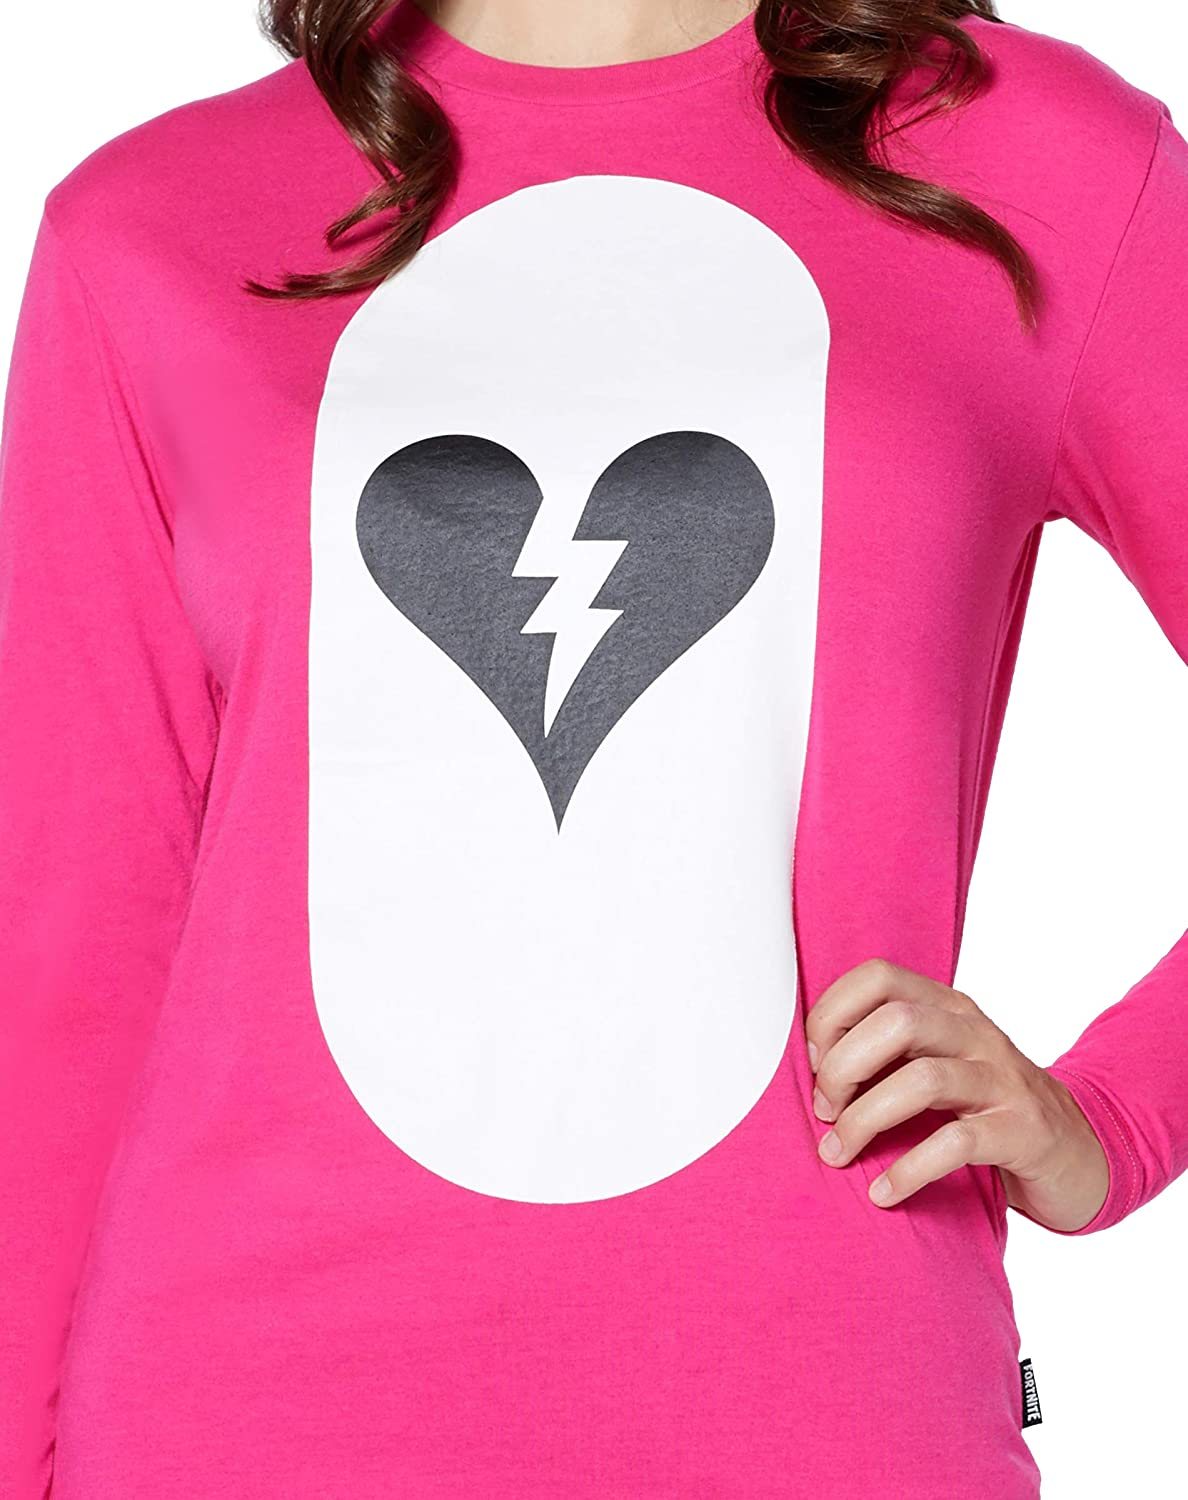 amazon com spirit halloween adult fortnite cuddle team leader costume t shirt clothing - fortnite broken heart